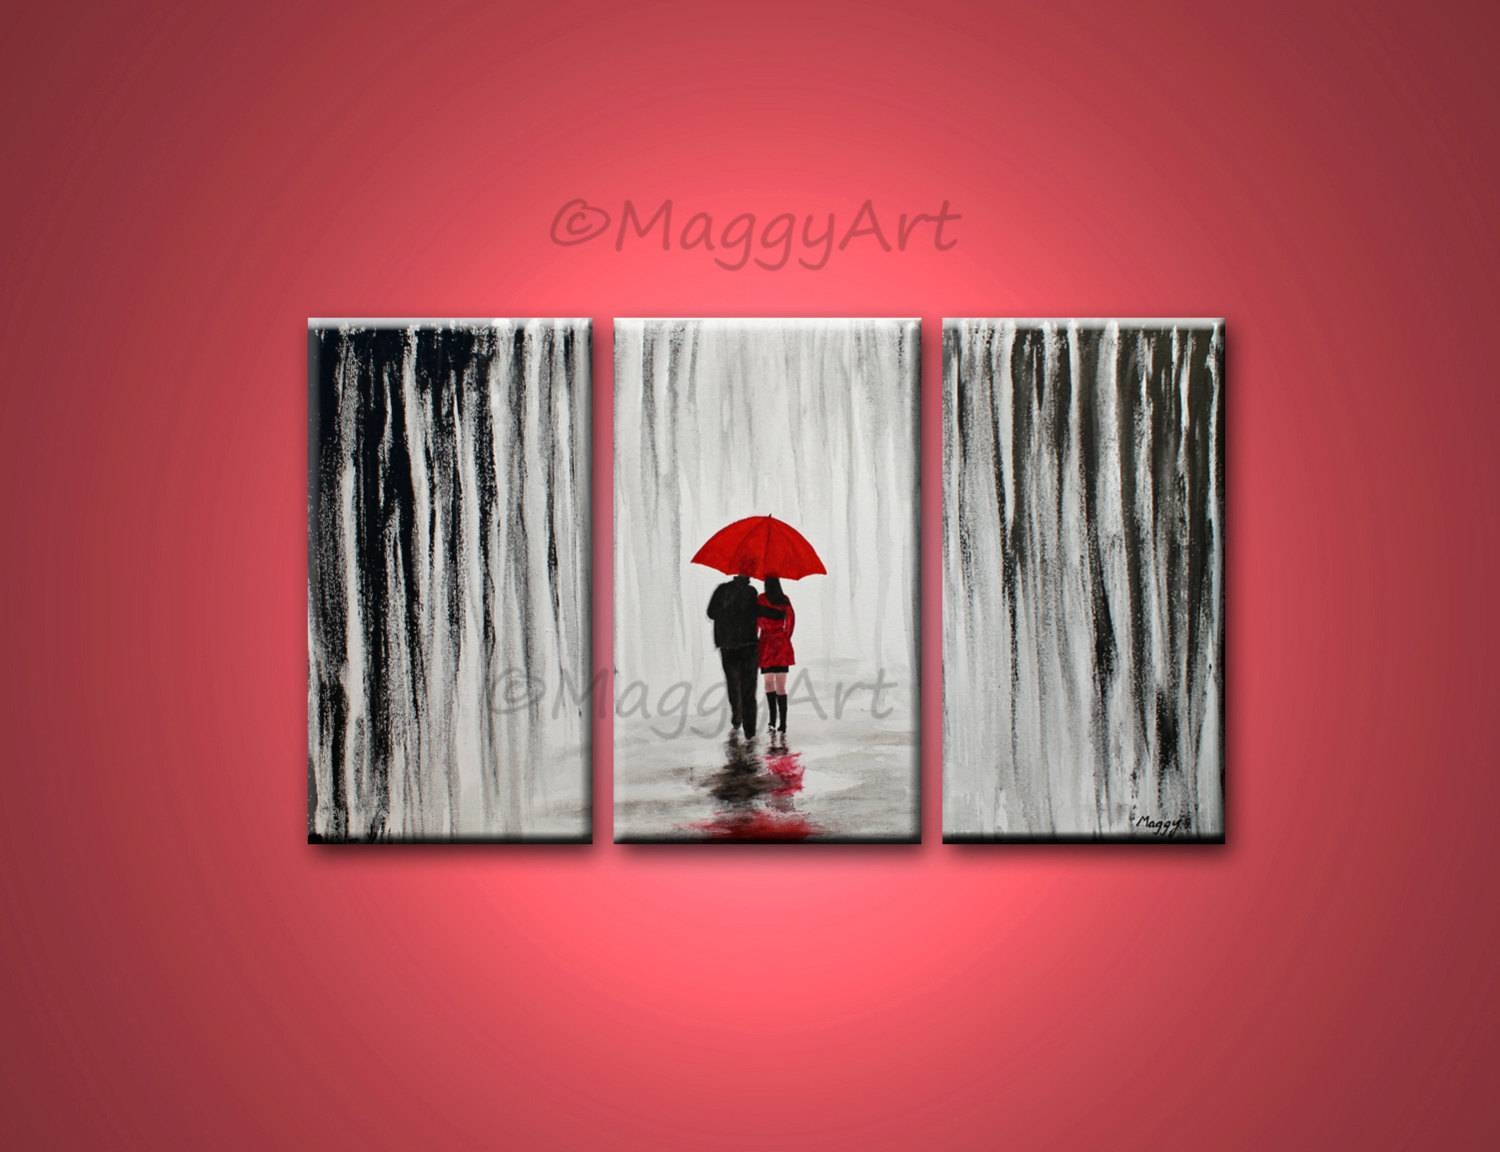 Original Acrylic Painting72x36 Inch Walking In Rain Black Regarding 2018 Black White And Red Wall Art (Gallery 13 of 20)